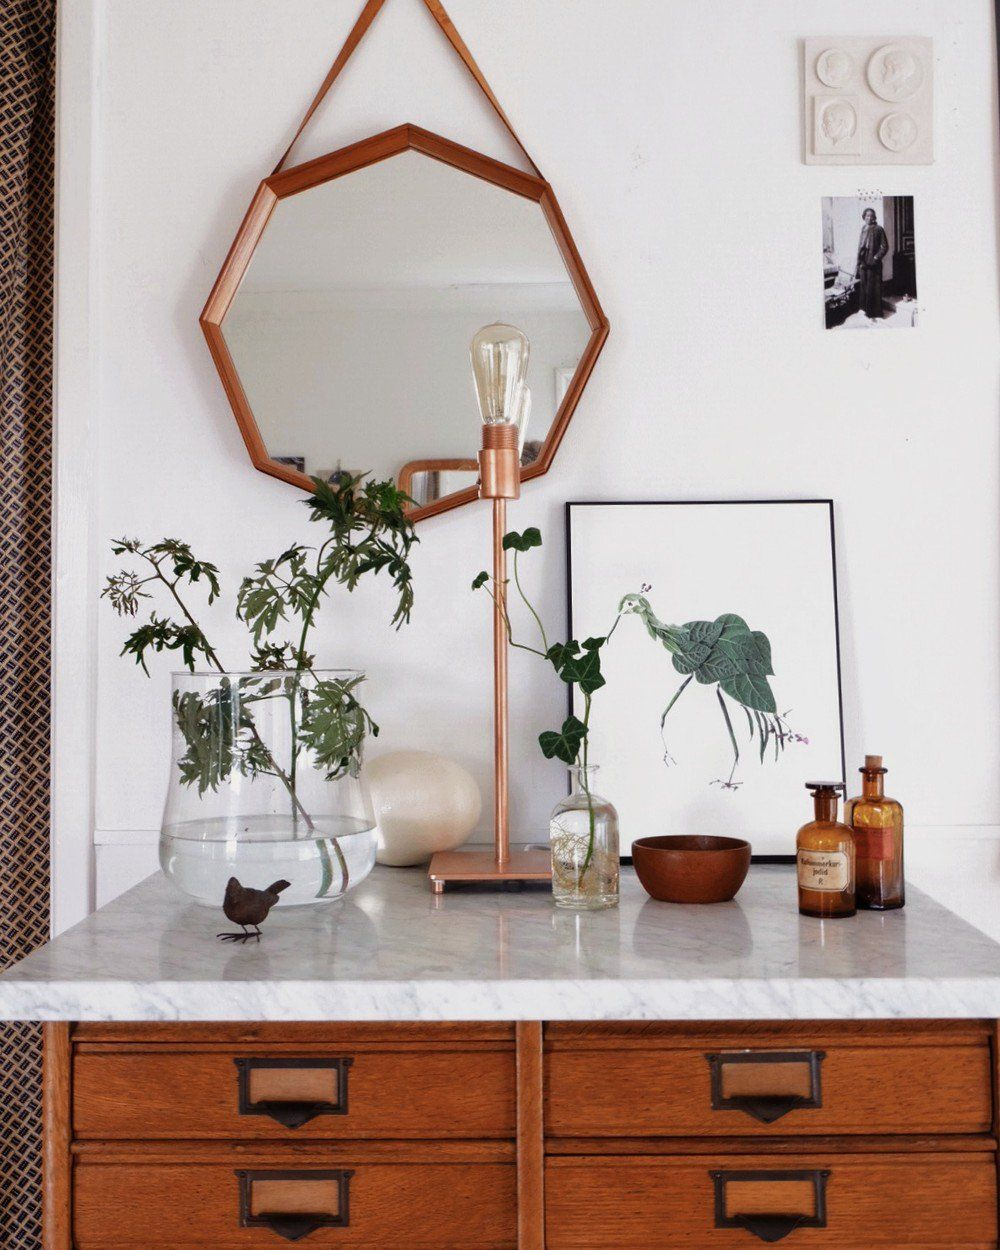 Pin By Victoria Irvine On Ideal Home | Pinterest | Console Styling, Mirror  And Consoles